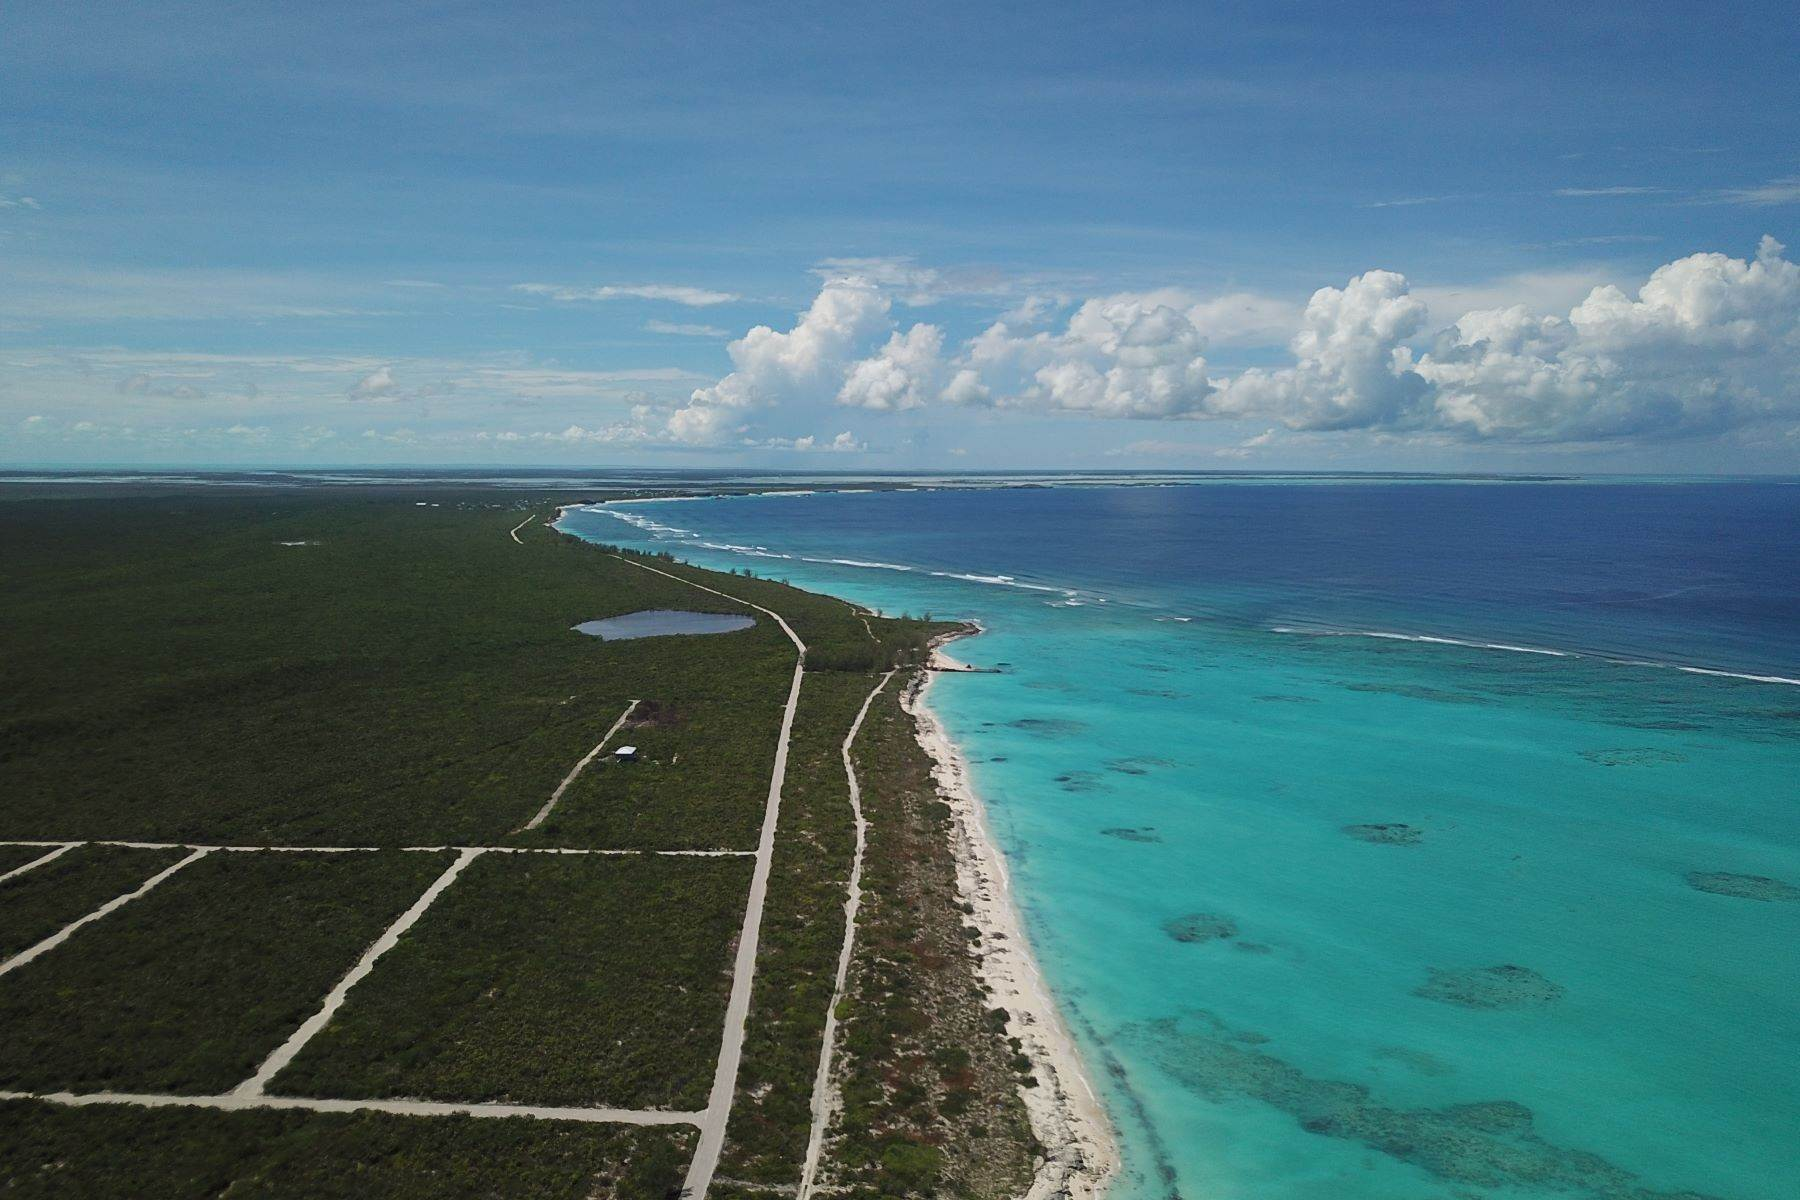 Land for Sale at Bambarra Beach West Lots 47,48,56,57,58,66,67,68 Bambarra, Middle Caicos Turks And Caicos Islands